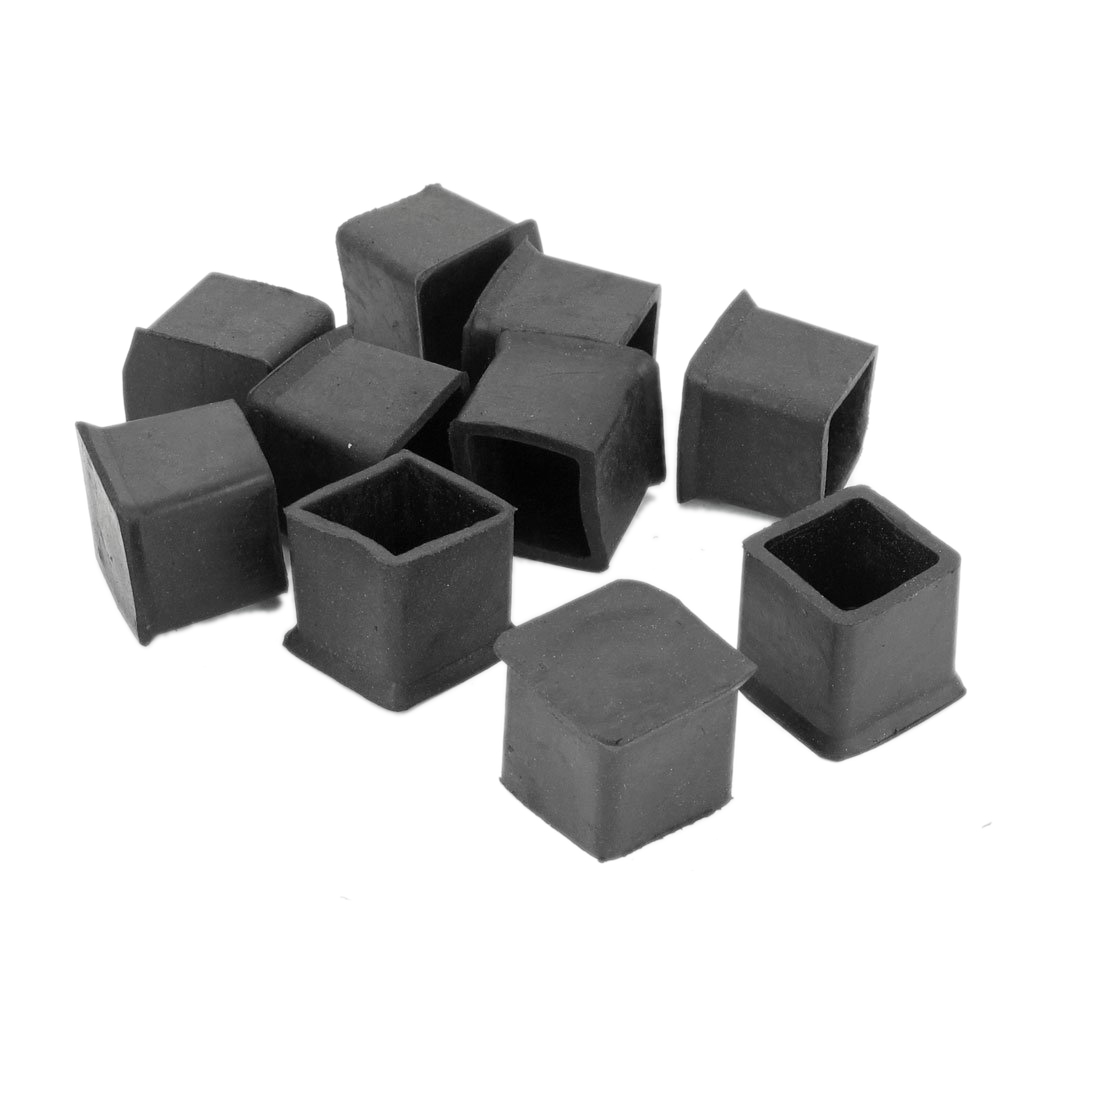 DHDL! 10 Pcs Rubber 25mm x 25mm Furniture Chair Legs Covers Protectors